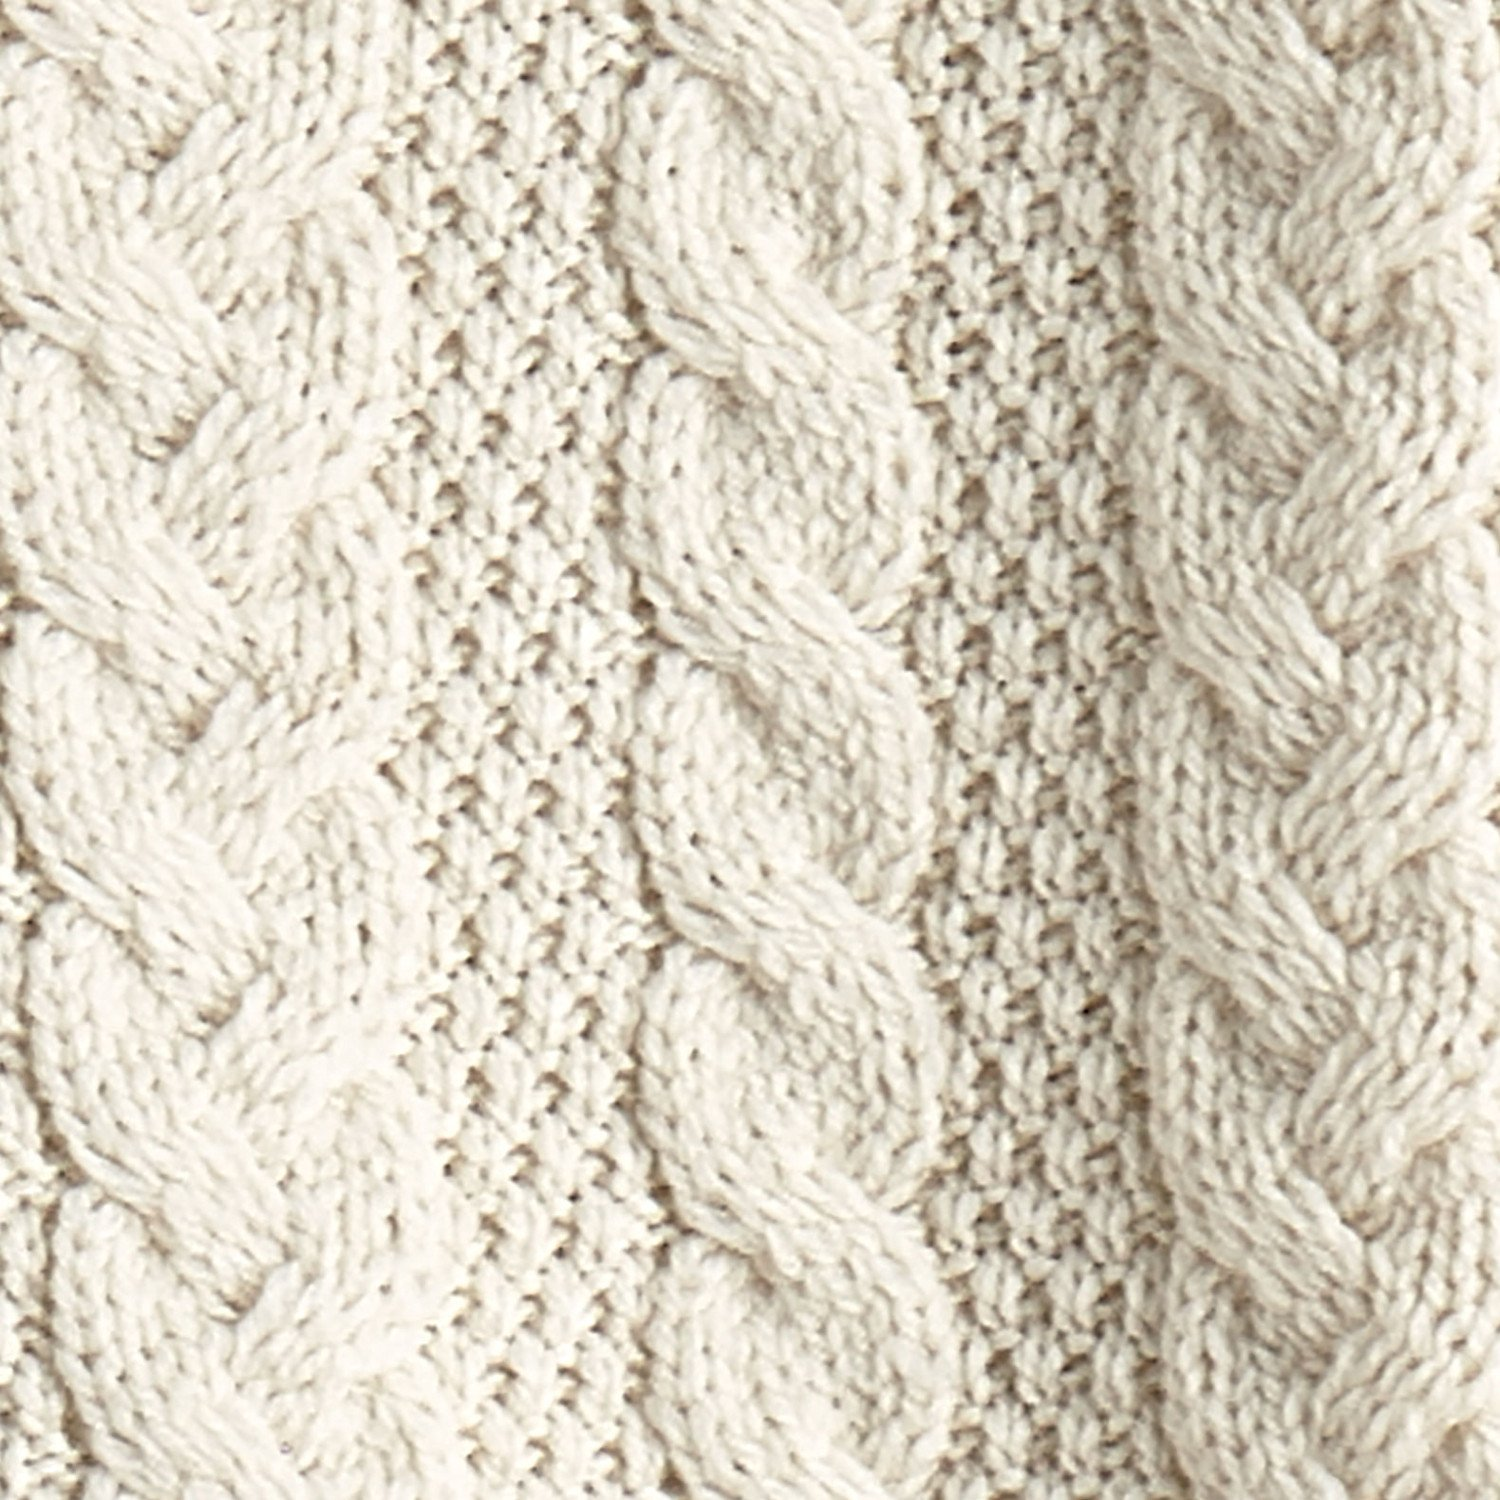 West End Knitwear Women's Brigid Hooded Aran Cardigan - Natural - 2X by West End Knitwear (Image #2)